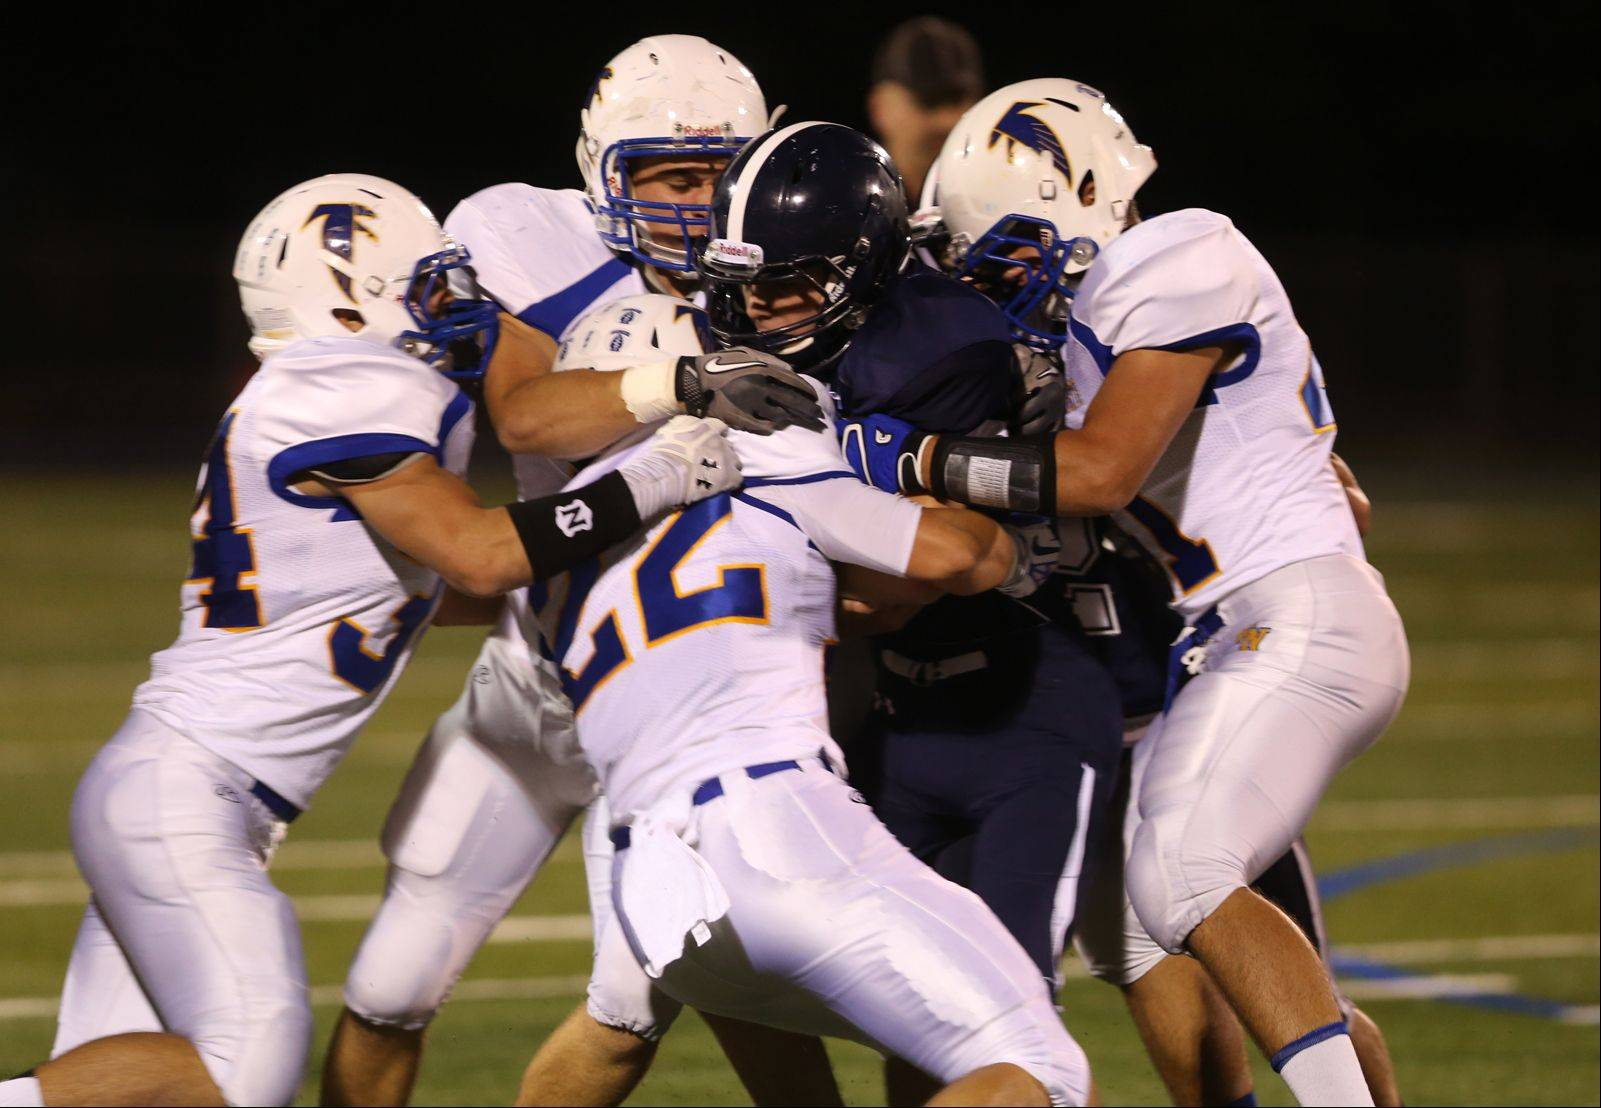 Lake Park quarterback Bobby Accetura gets sacked up by a host of Wheaton North defenders.